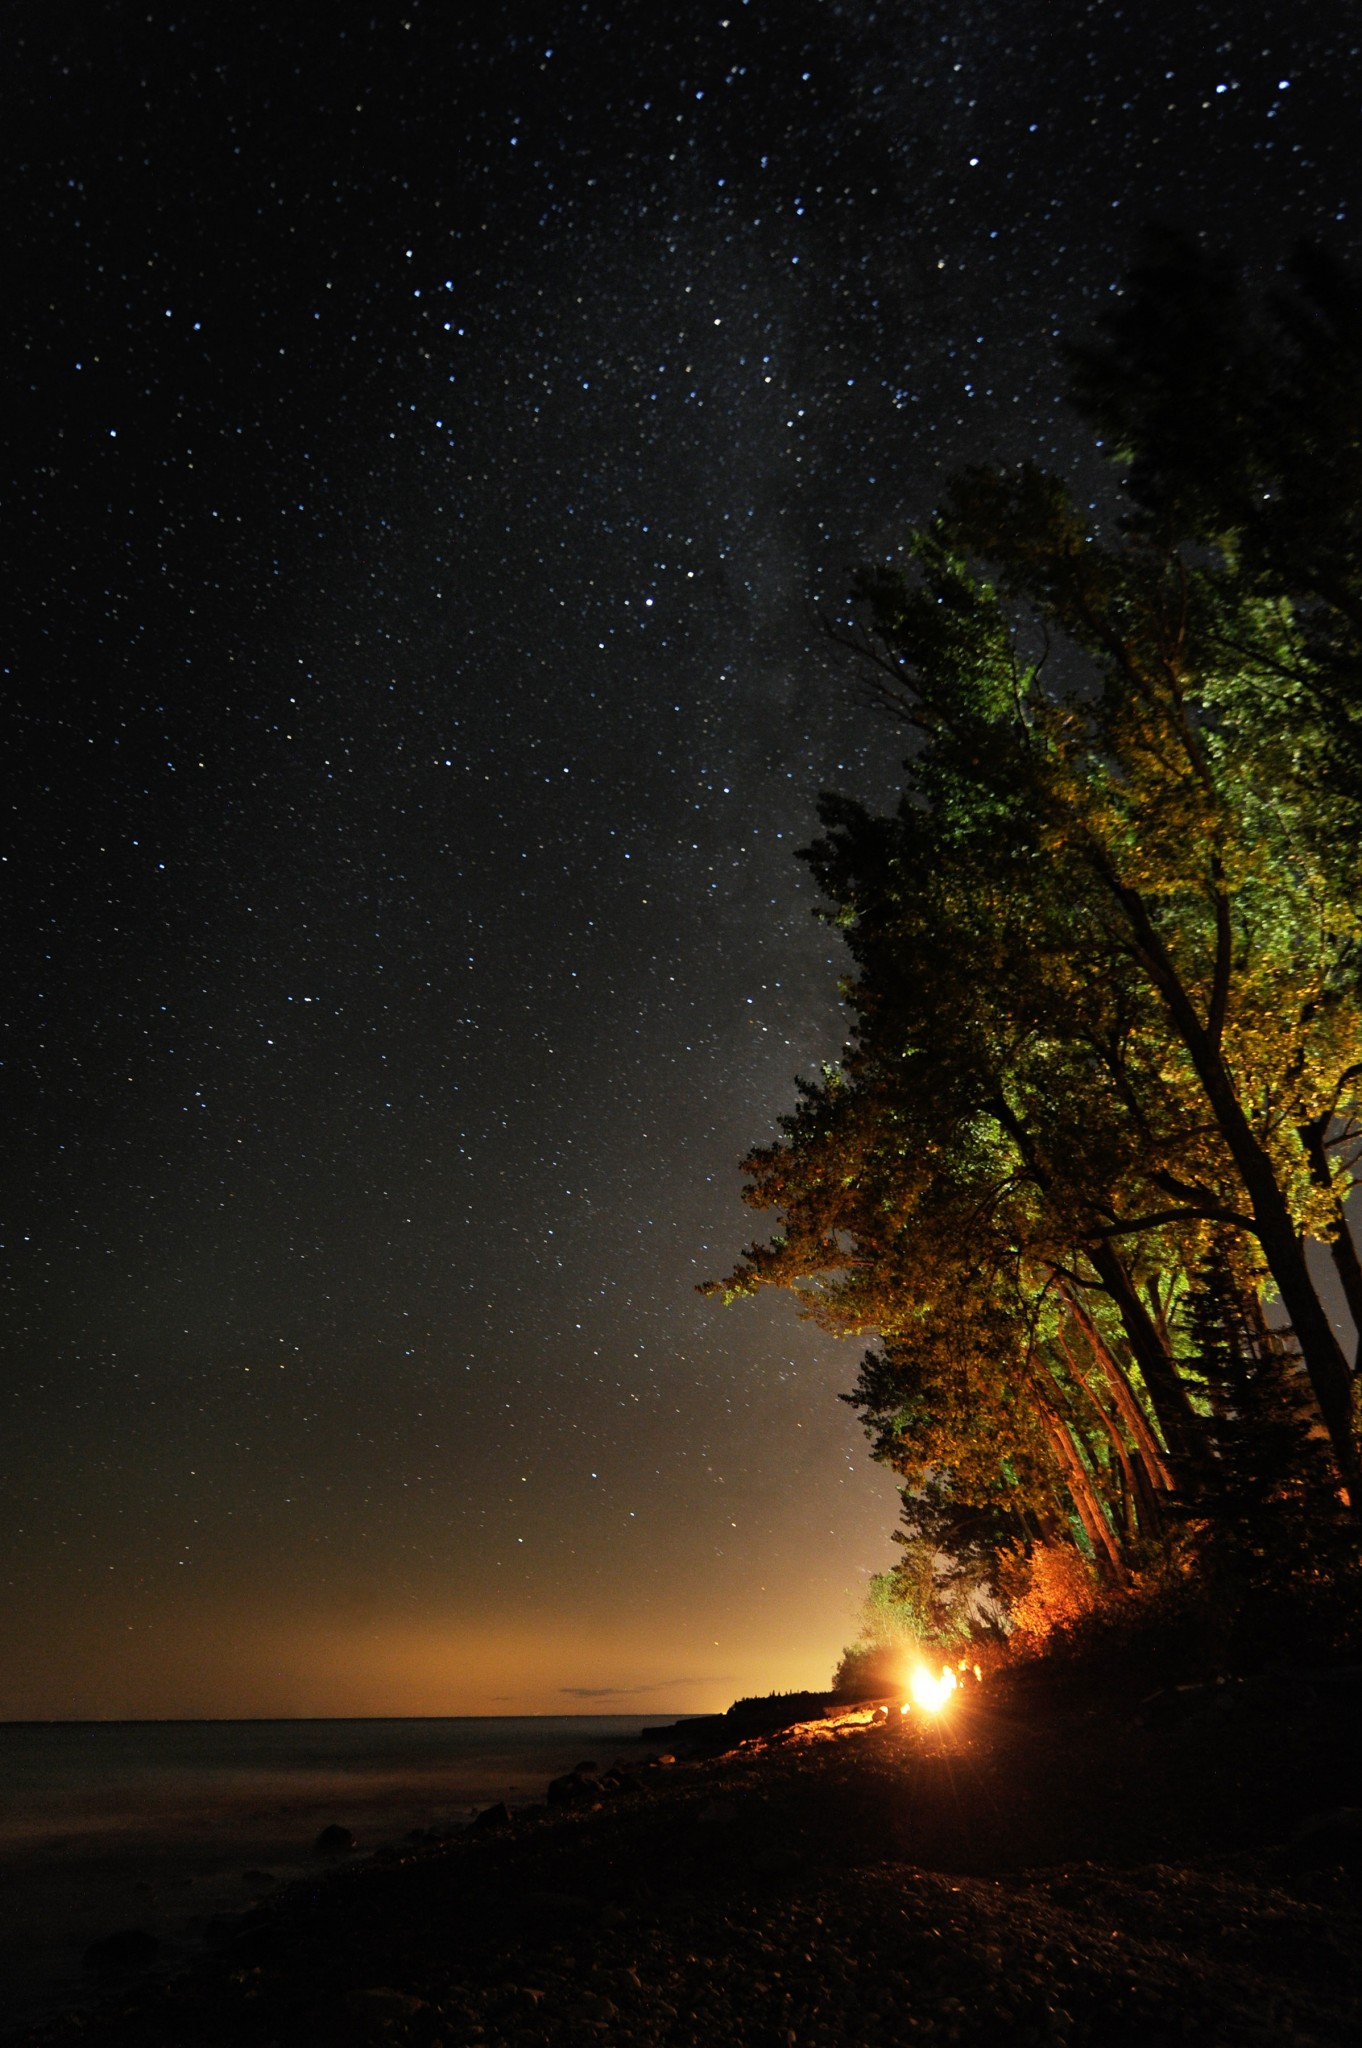 The Milky Way shows big and beautiful in the dark skies along Minnesota's North Shore of Lake Superior. This campfire view is from the Beach house near Two Harbors, Minnesota. (Photo by Art Weber)